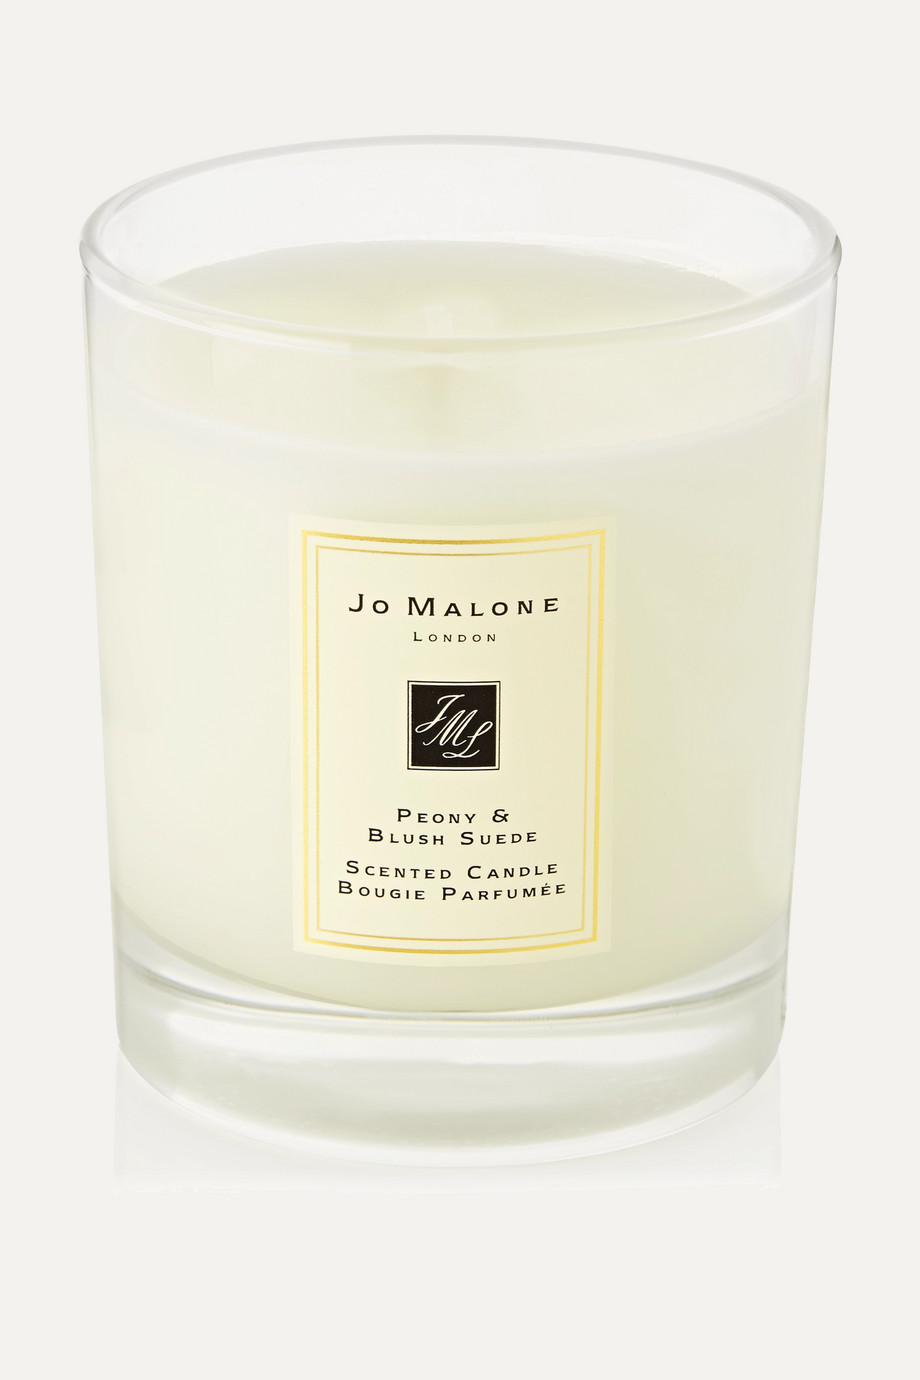 Jo Malone London Peony & Blush Suede Scented Home Candle, 200g